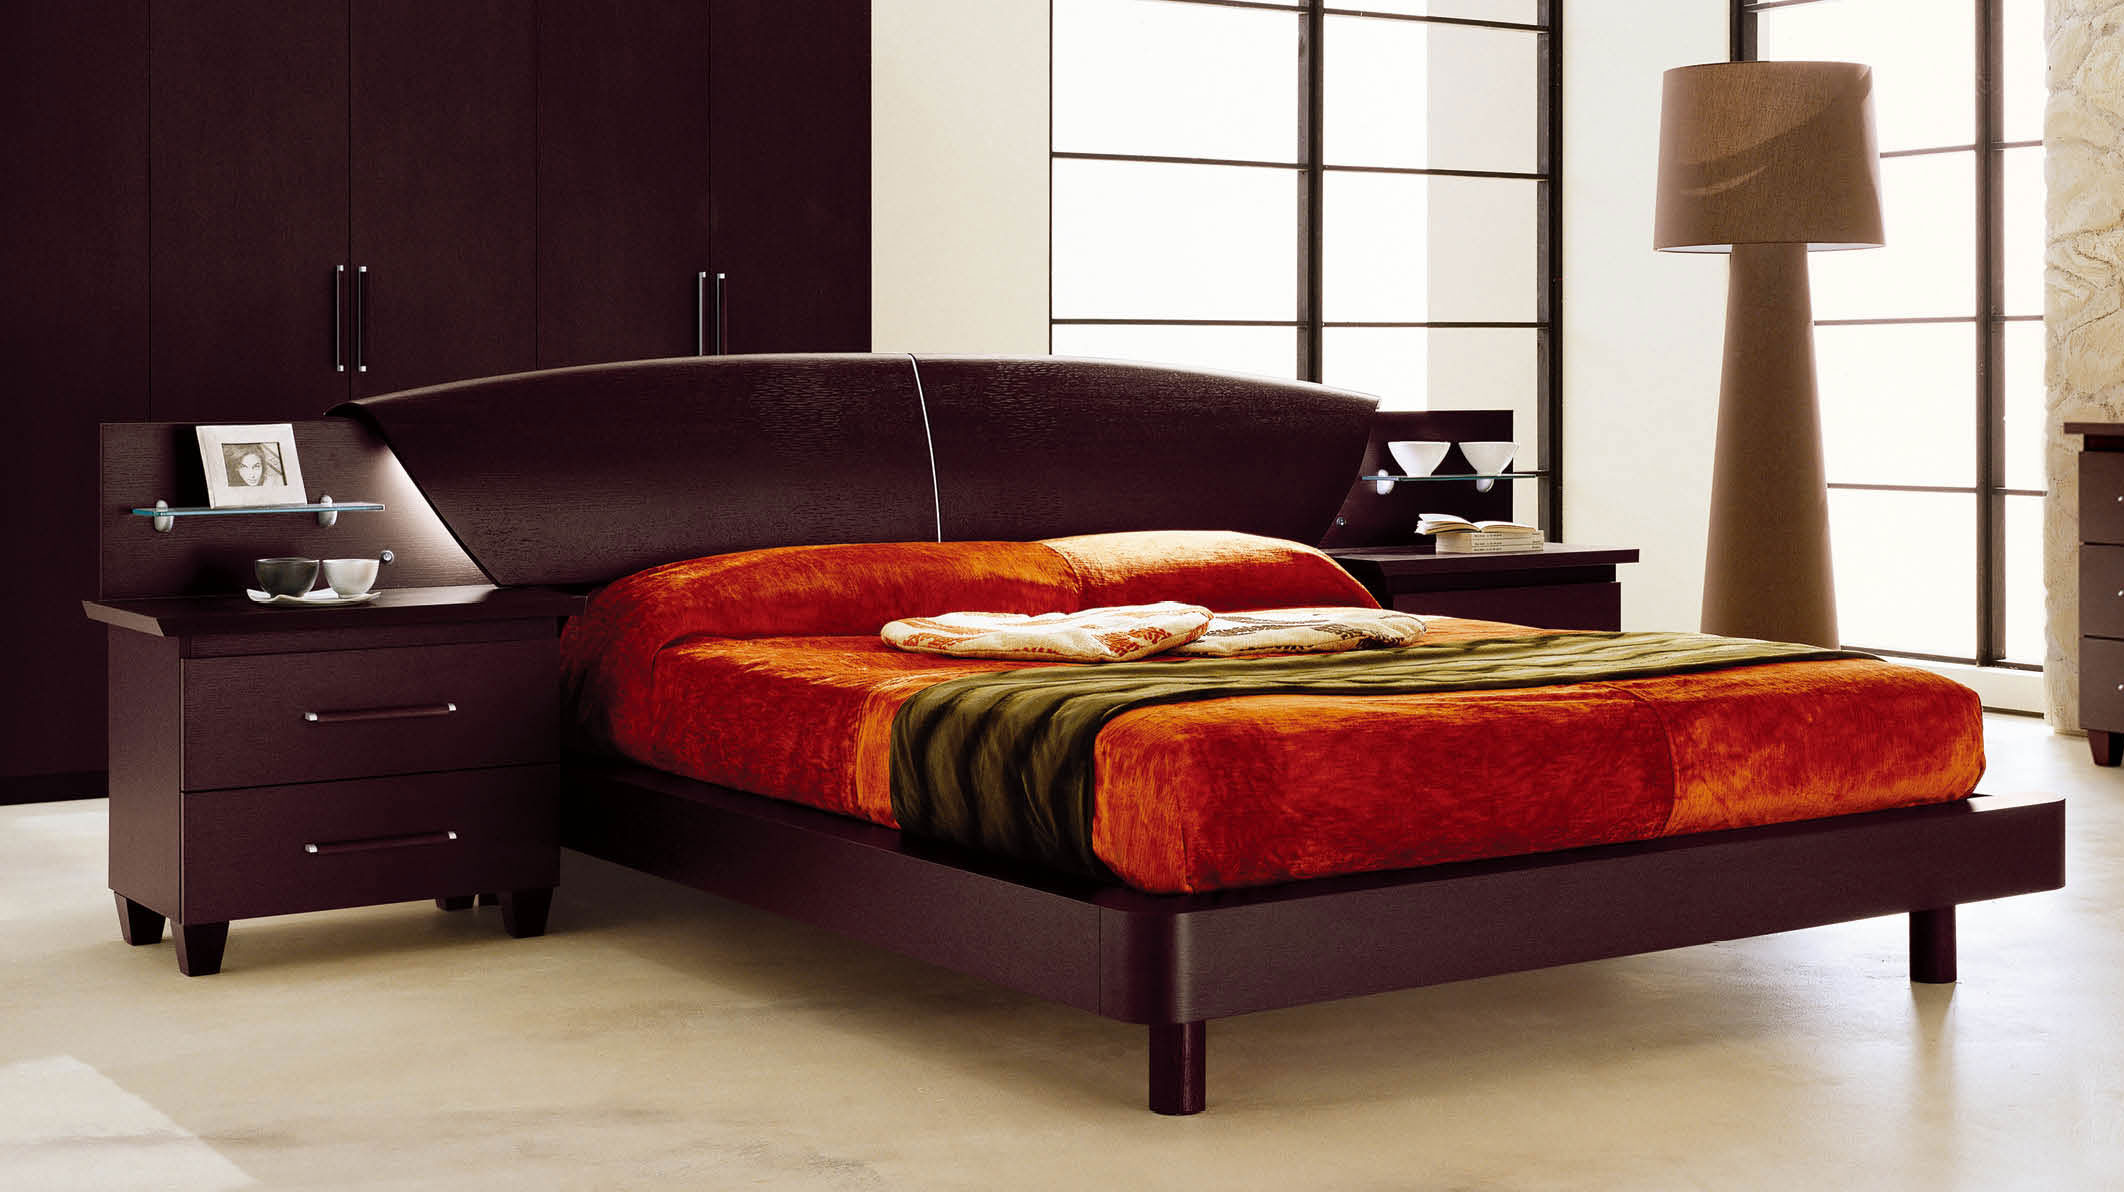 Lacquered made in italy leather luxury platform bed long beach california esfmissitalia5 Best time to buy bedroom furniture on sale